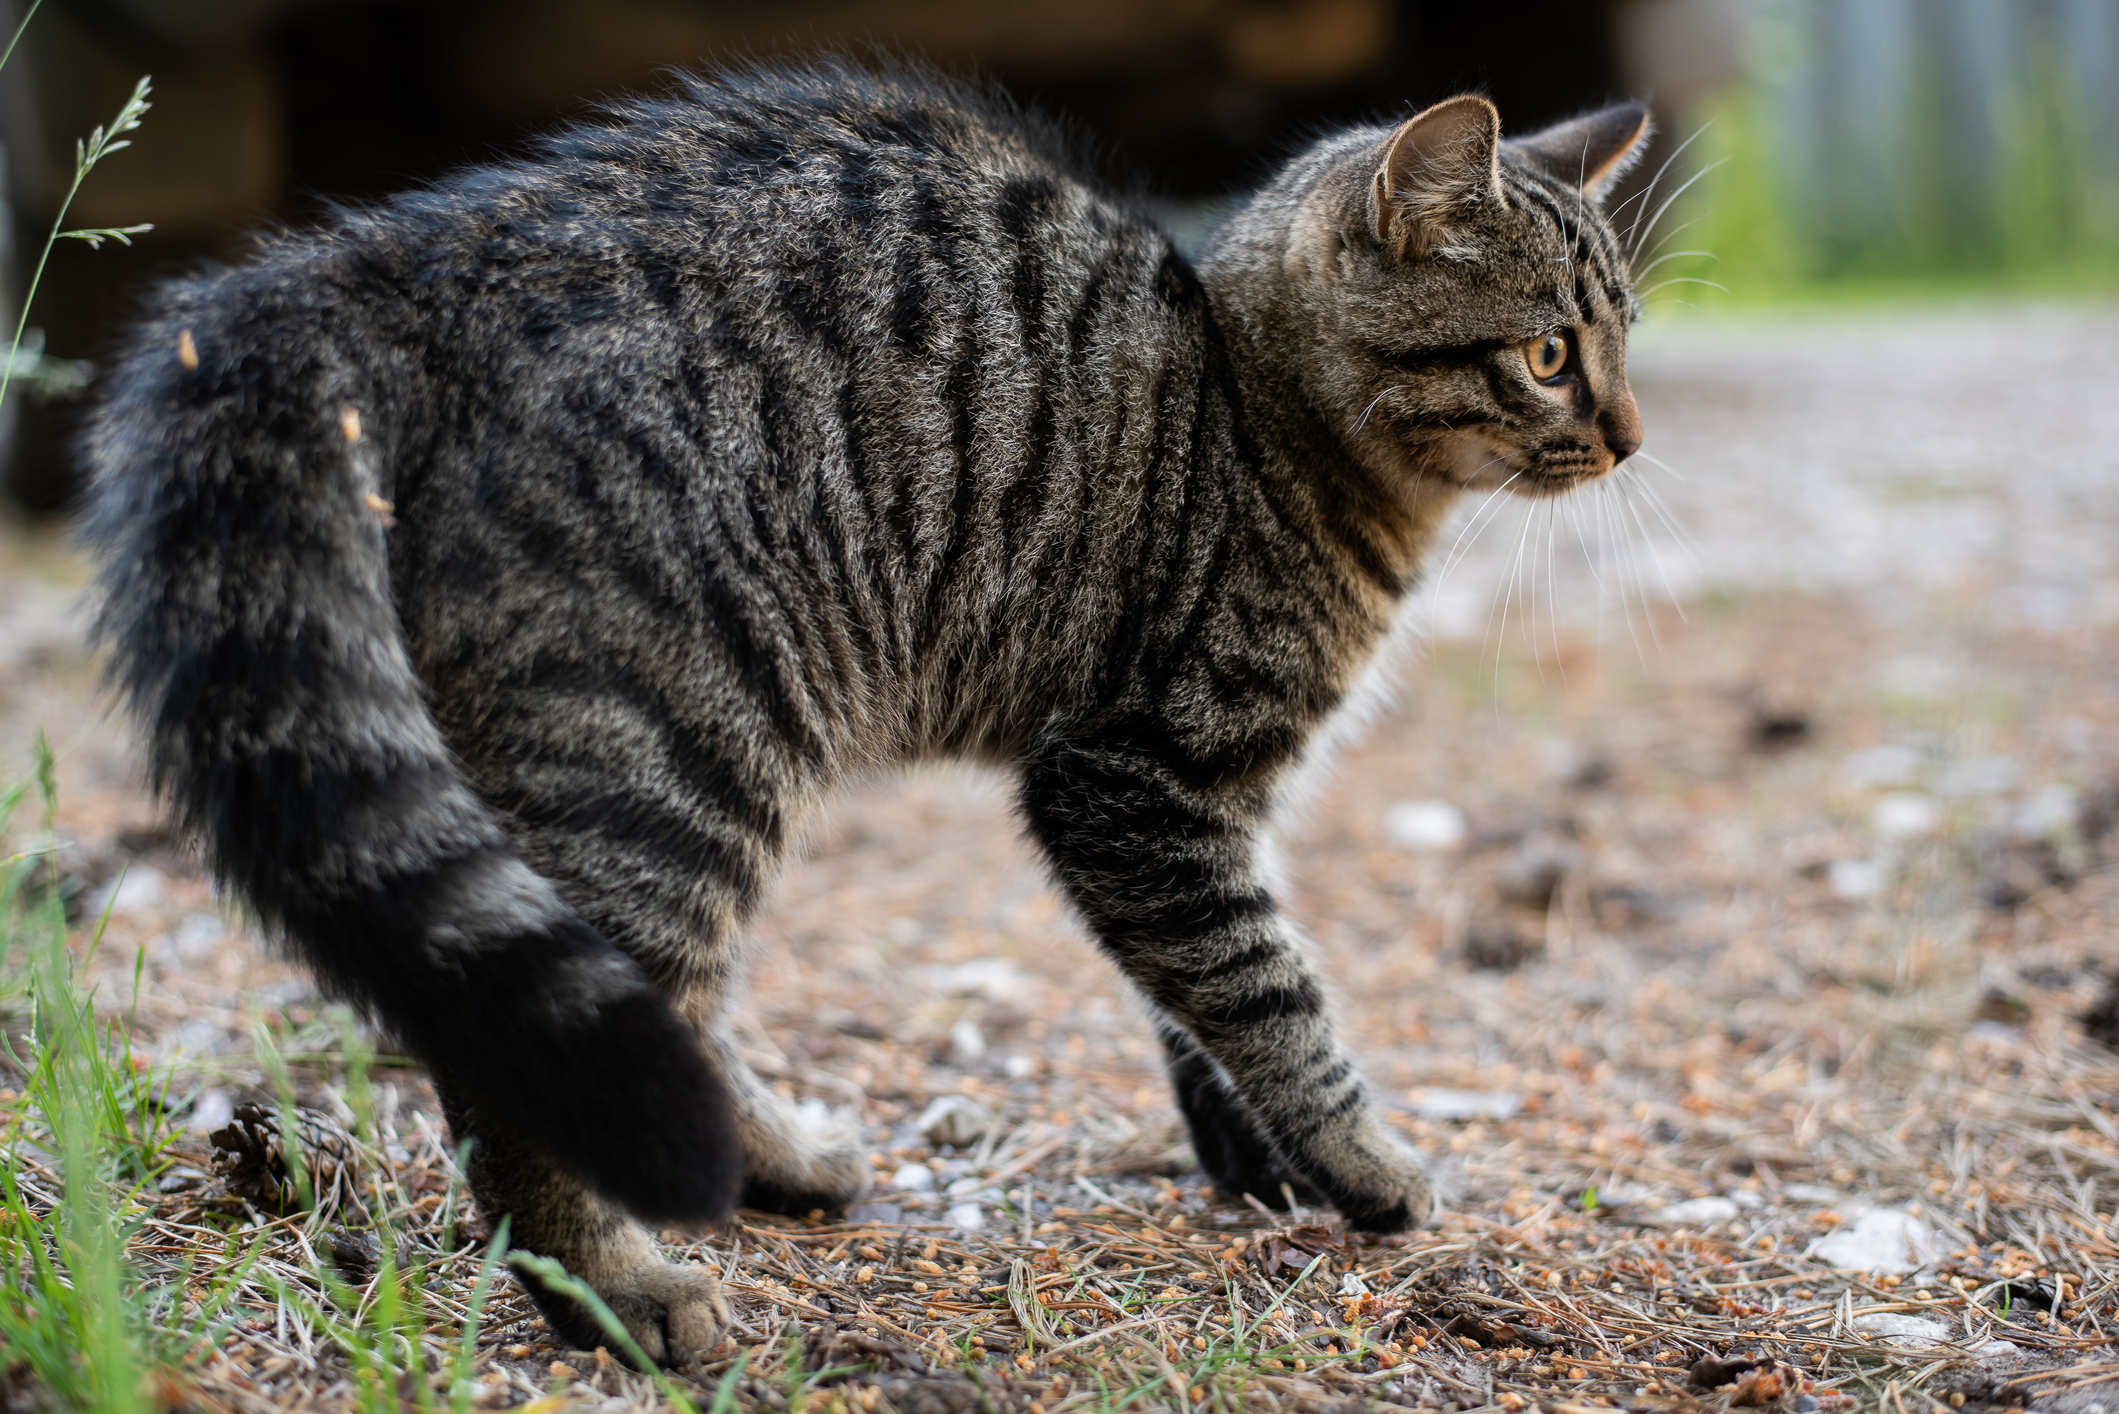 A brown tabby cat gets startled while outdoors